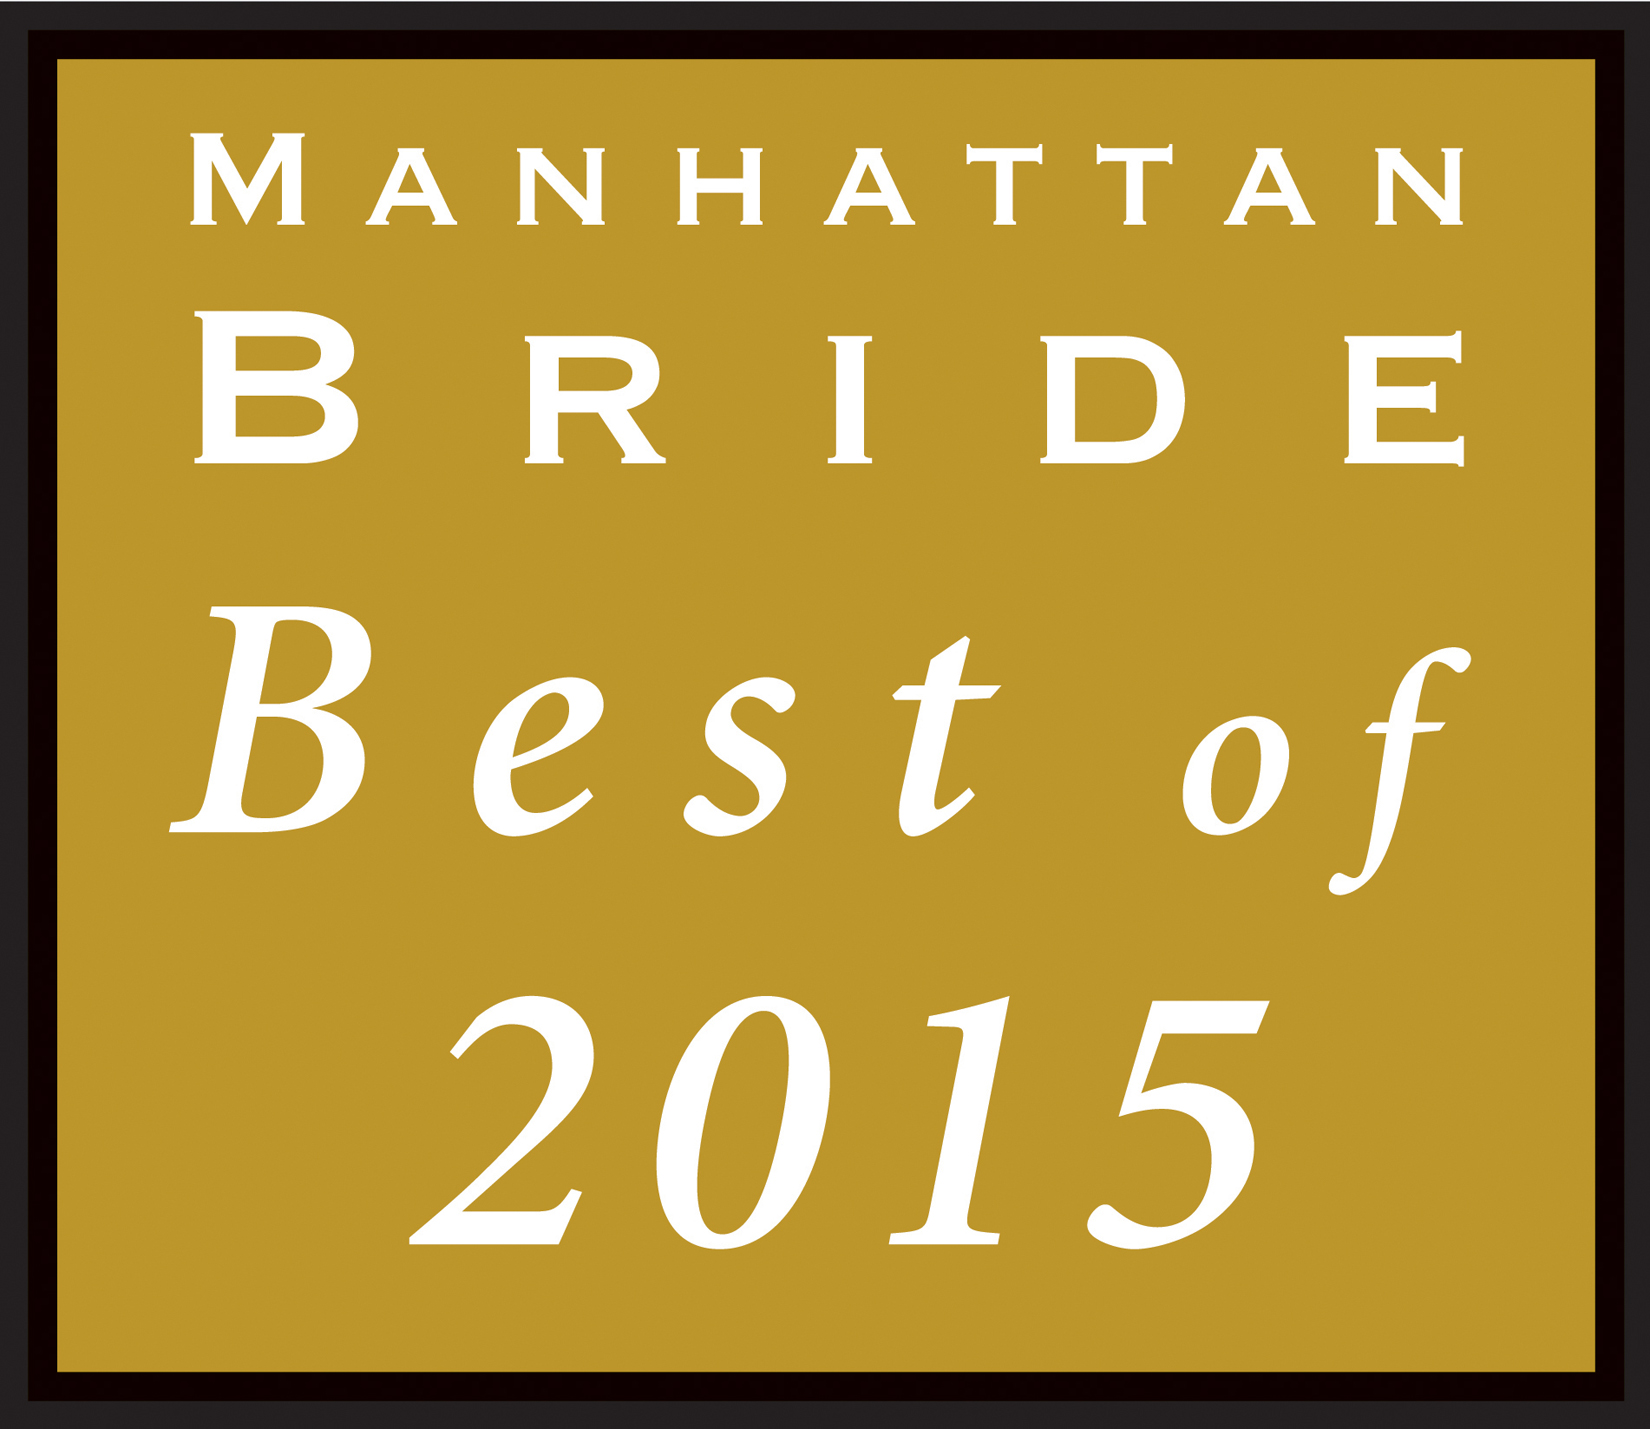 "CRAIG SCOTT ENTERTAINMENT NAMED  ""BEST OF 2015"" BY MANHATTAN BRIDE"